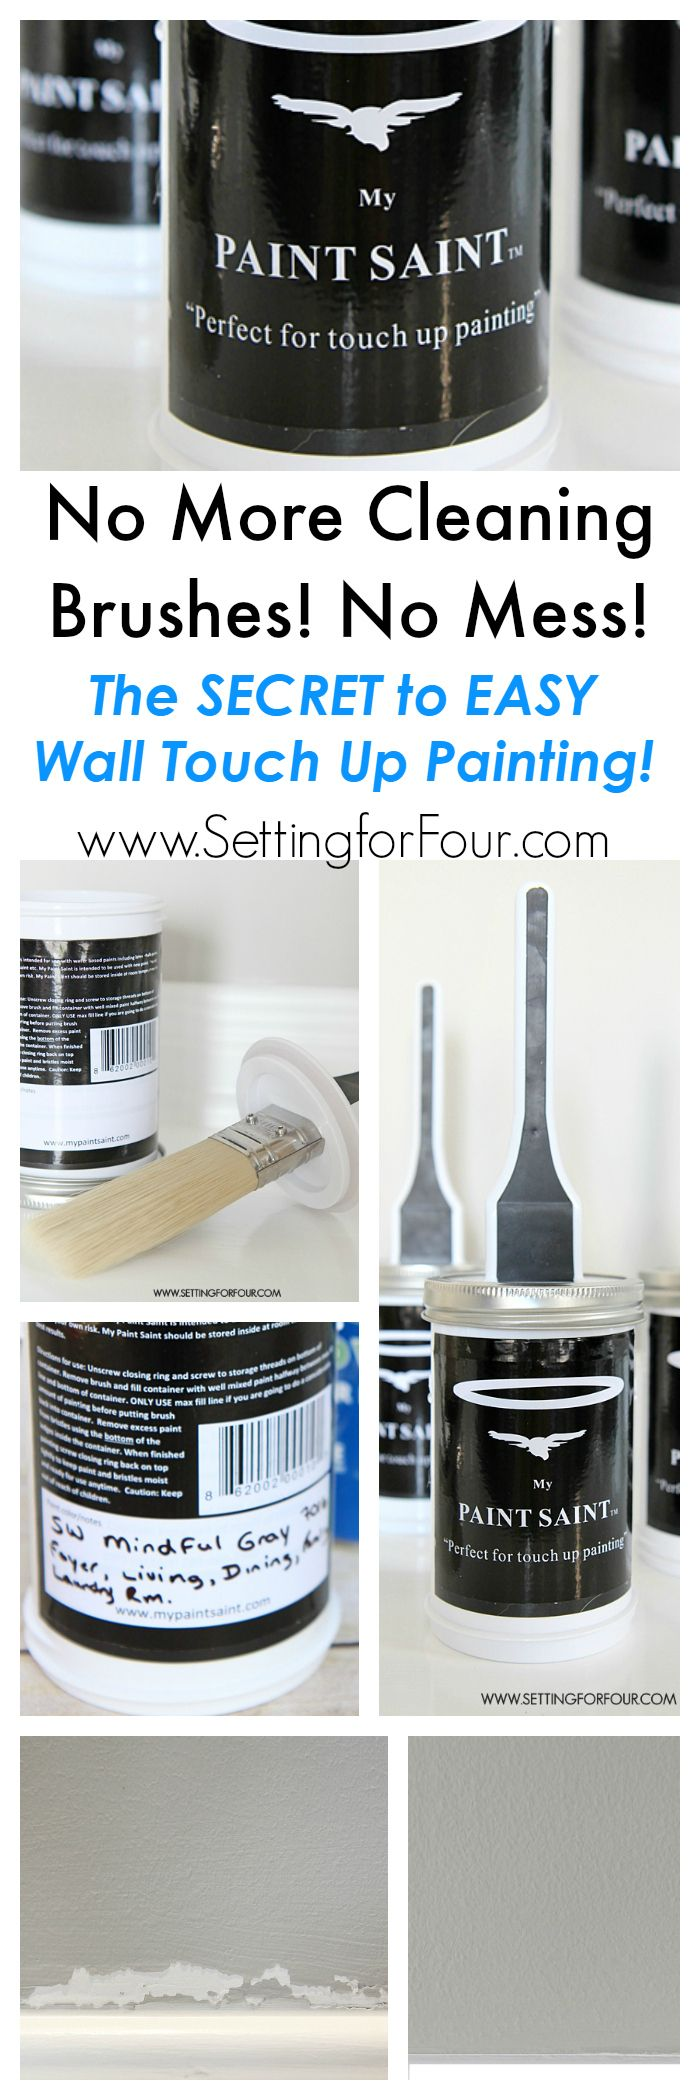 I tried this and am AMAZED! See the SECRET to easy, mess free wall touch up painting! No more cleaning brushes or dealing with old rusted cans of paint- hurray! www.settingforfour.com